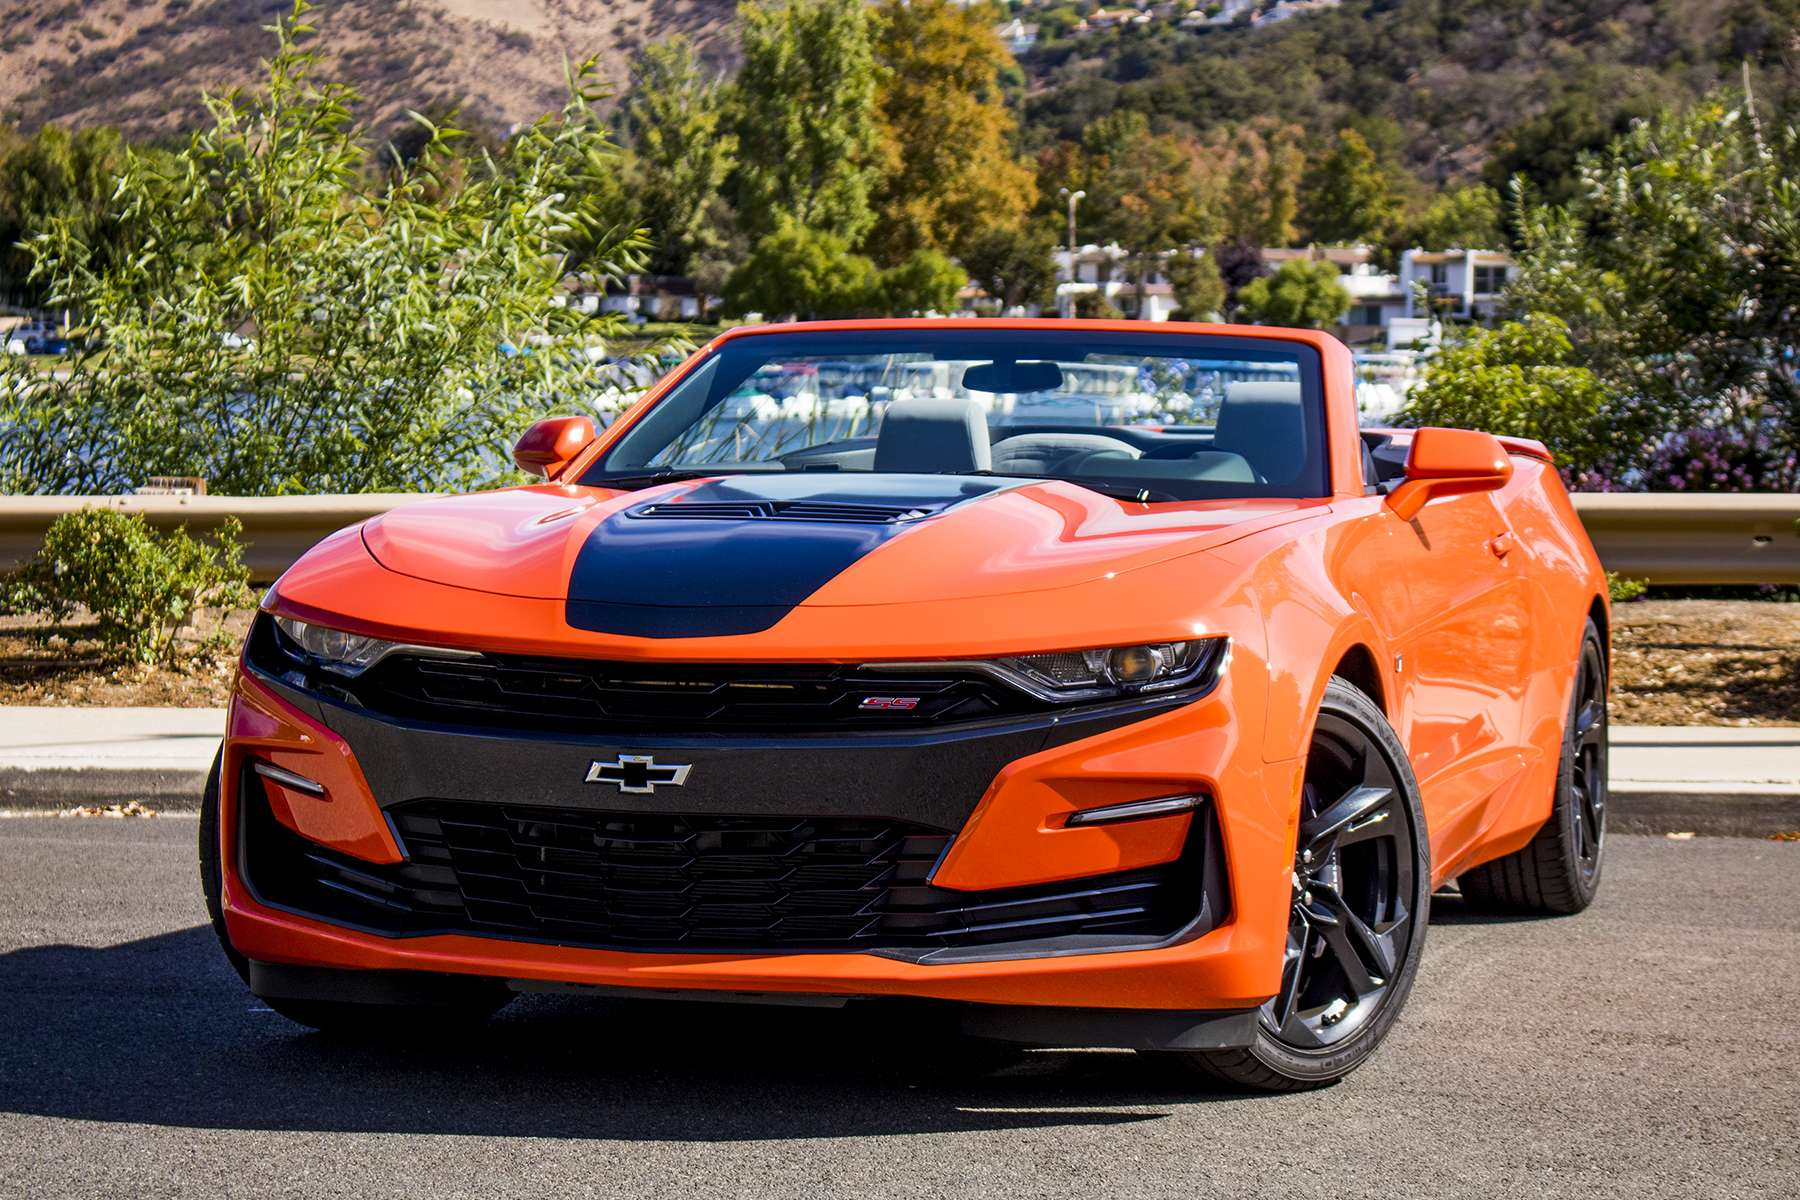 95 All New 2019 Camaro Ss Model